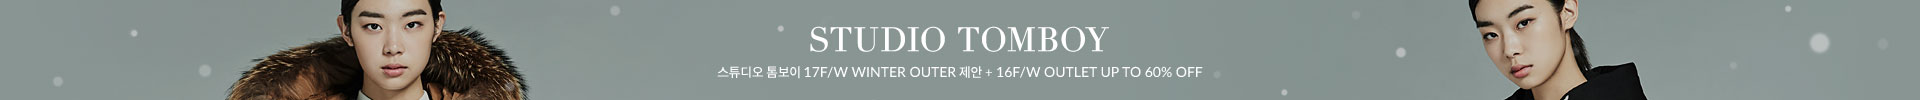 스튜디오 톰보이 17F/W WINTER OUTER 제안 + 16F/W OUTLET UP TO 60% OFF